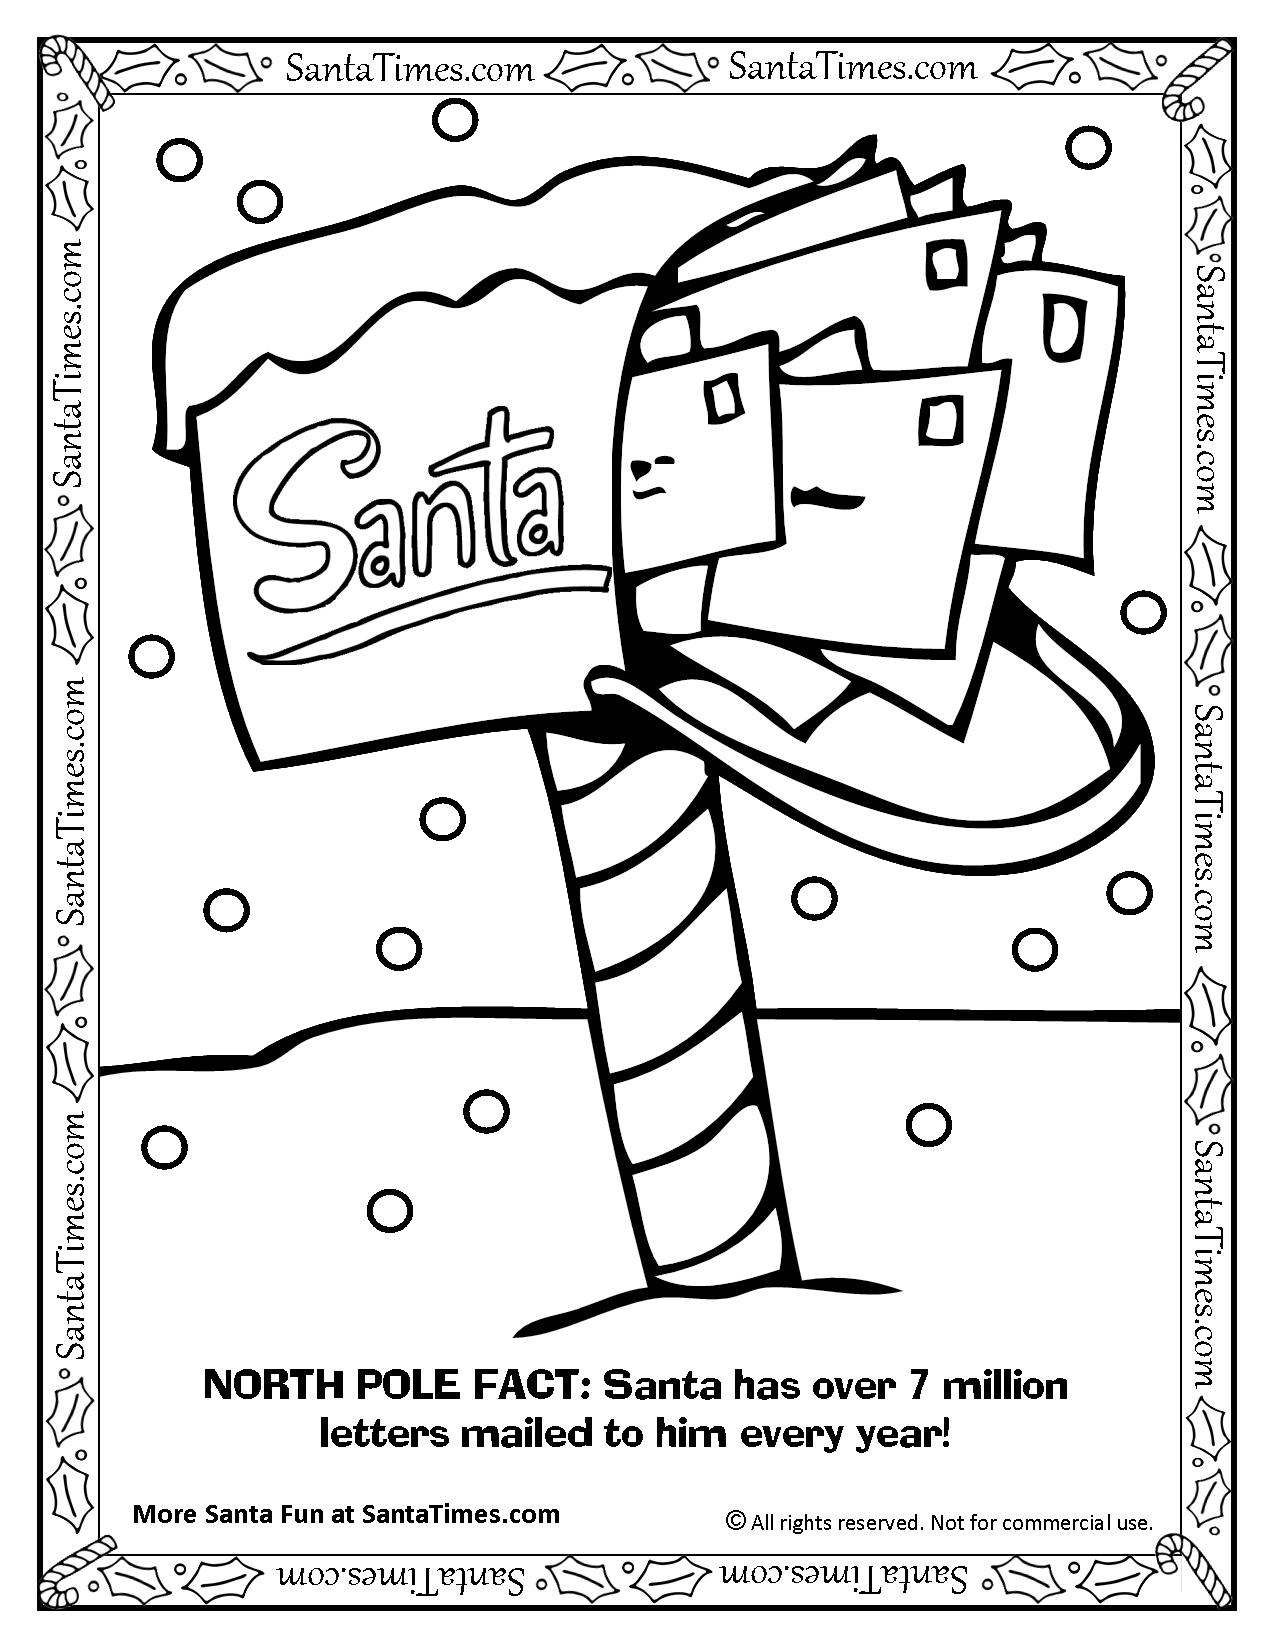 mailbox coloring pages for kids | Santa's North Pole Mailbox Coloring Page Printout. More ...